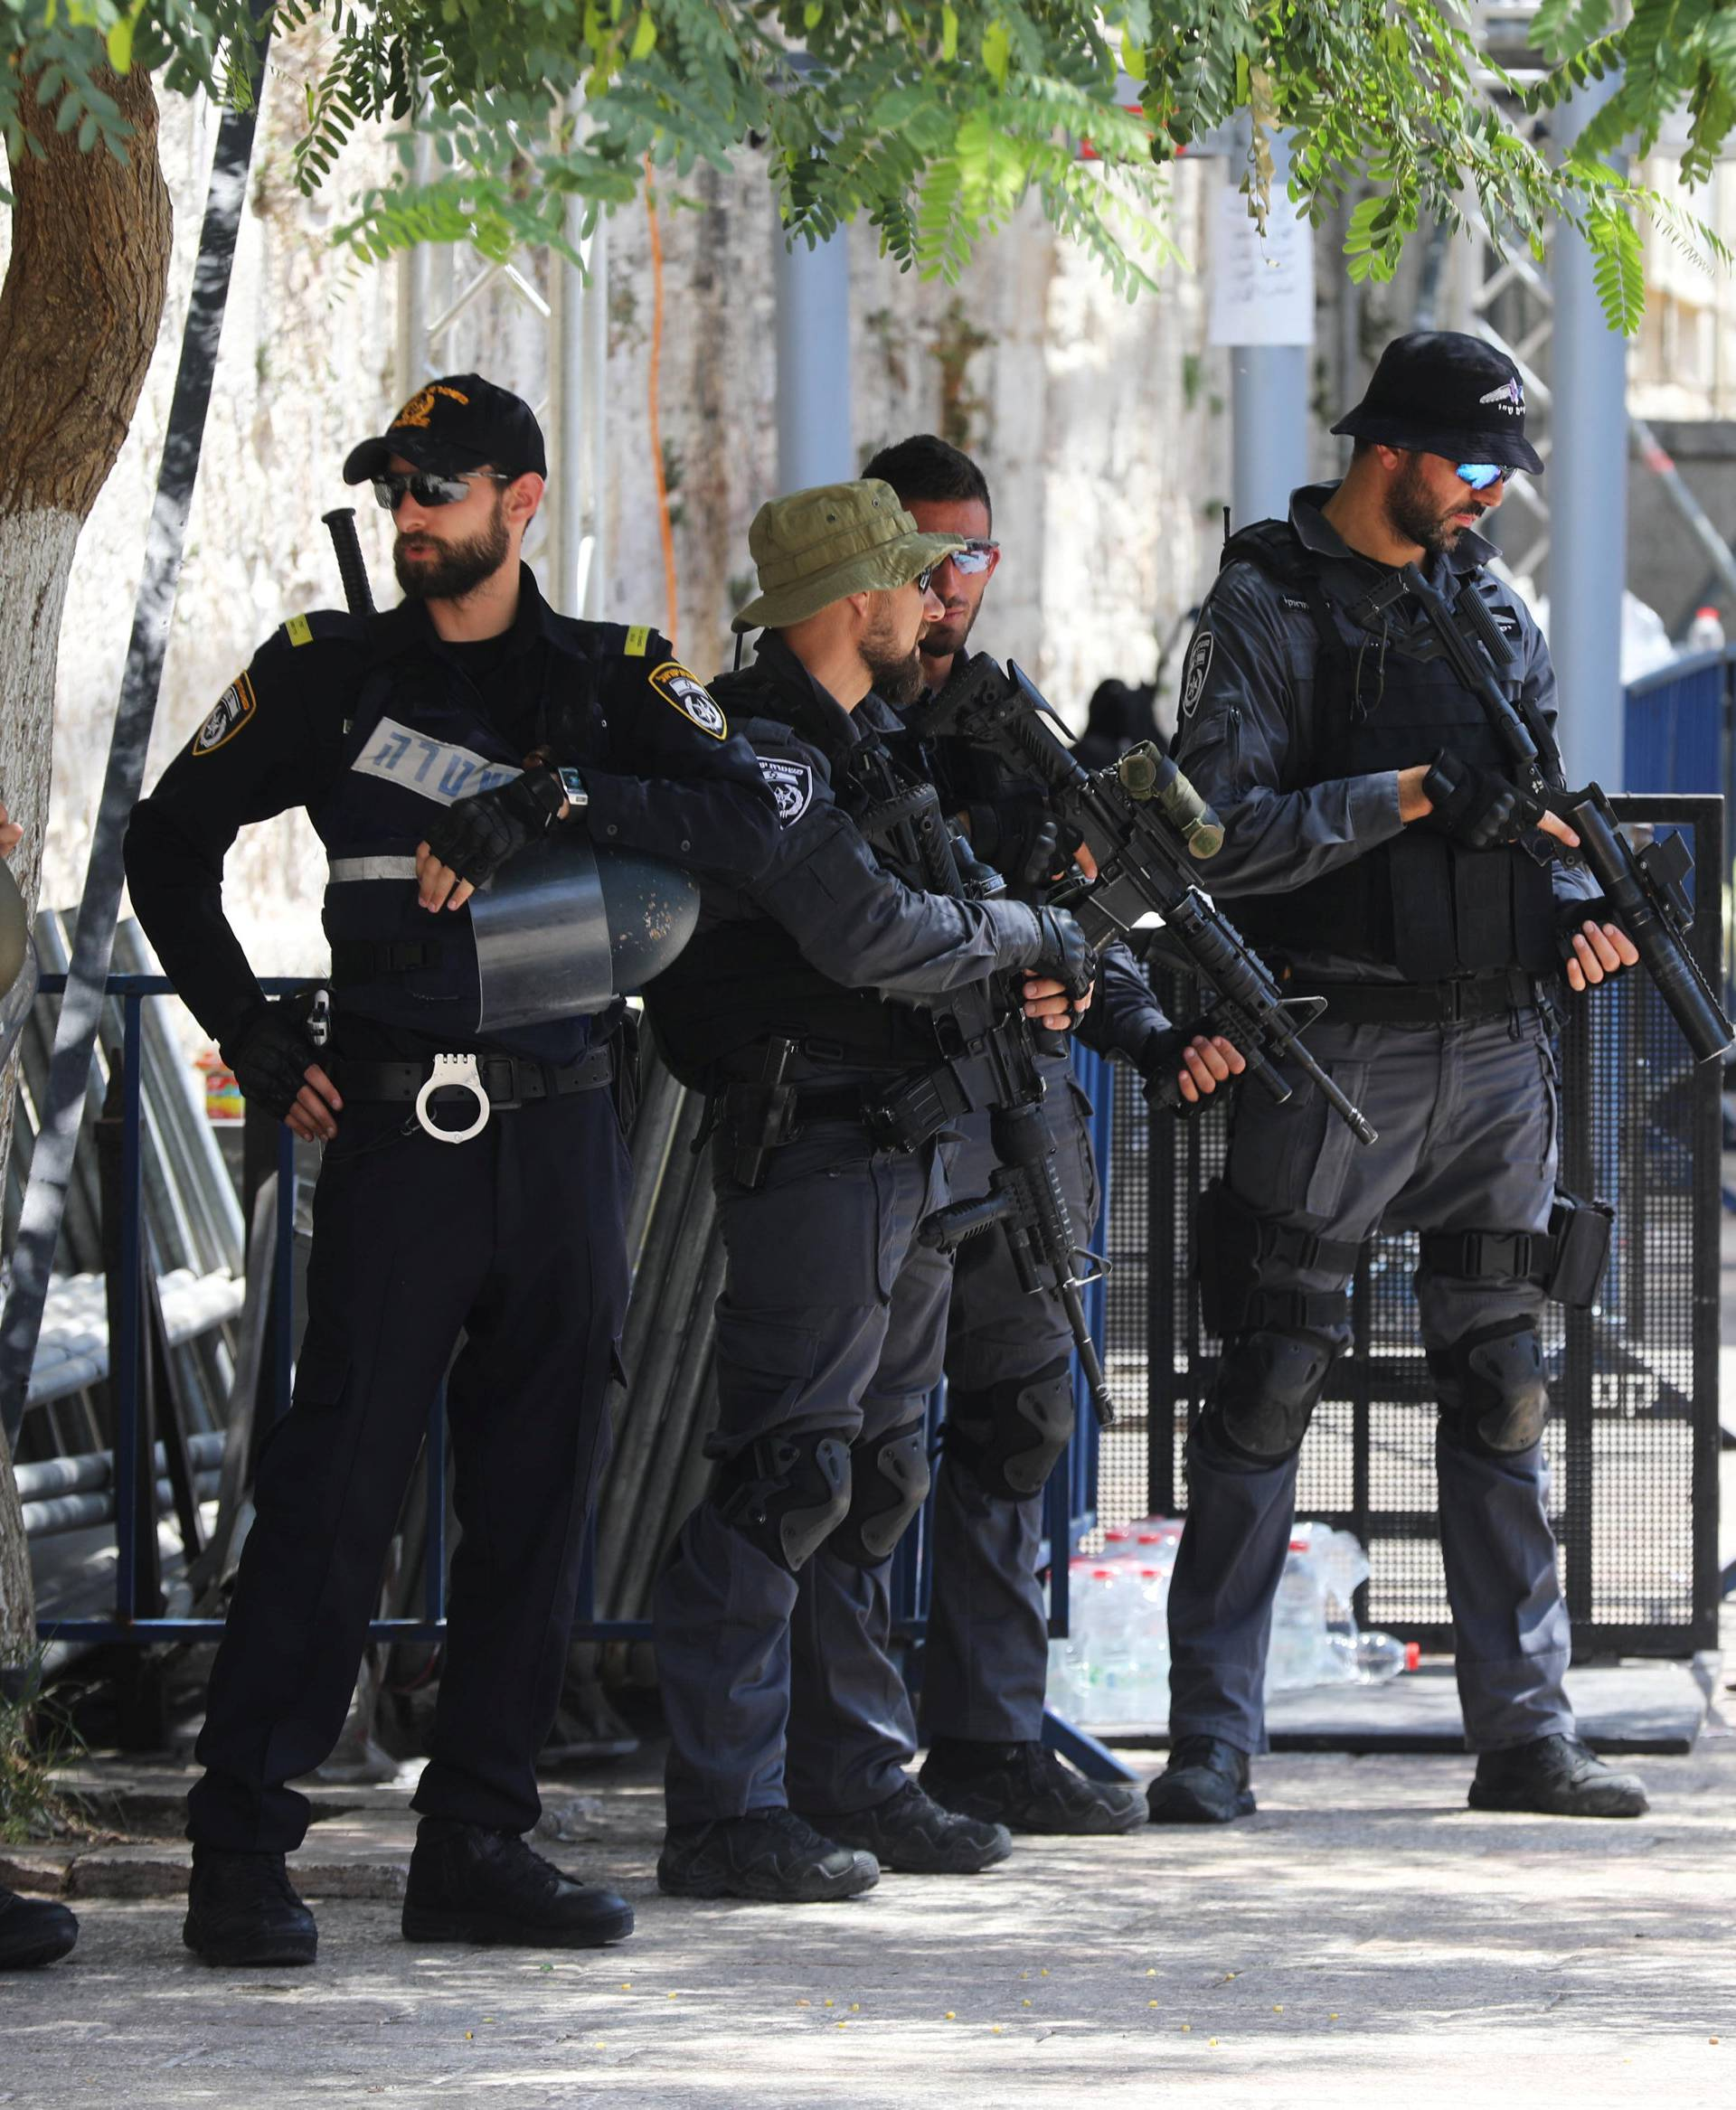 Israeli police officers stand guard next to recently installed metal detectors at an entrance to the compound known to Muslims as Noble Sanctuary and to Jews as Temple Mount in Jerusalem's Old City